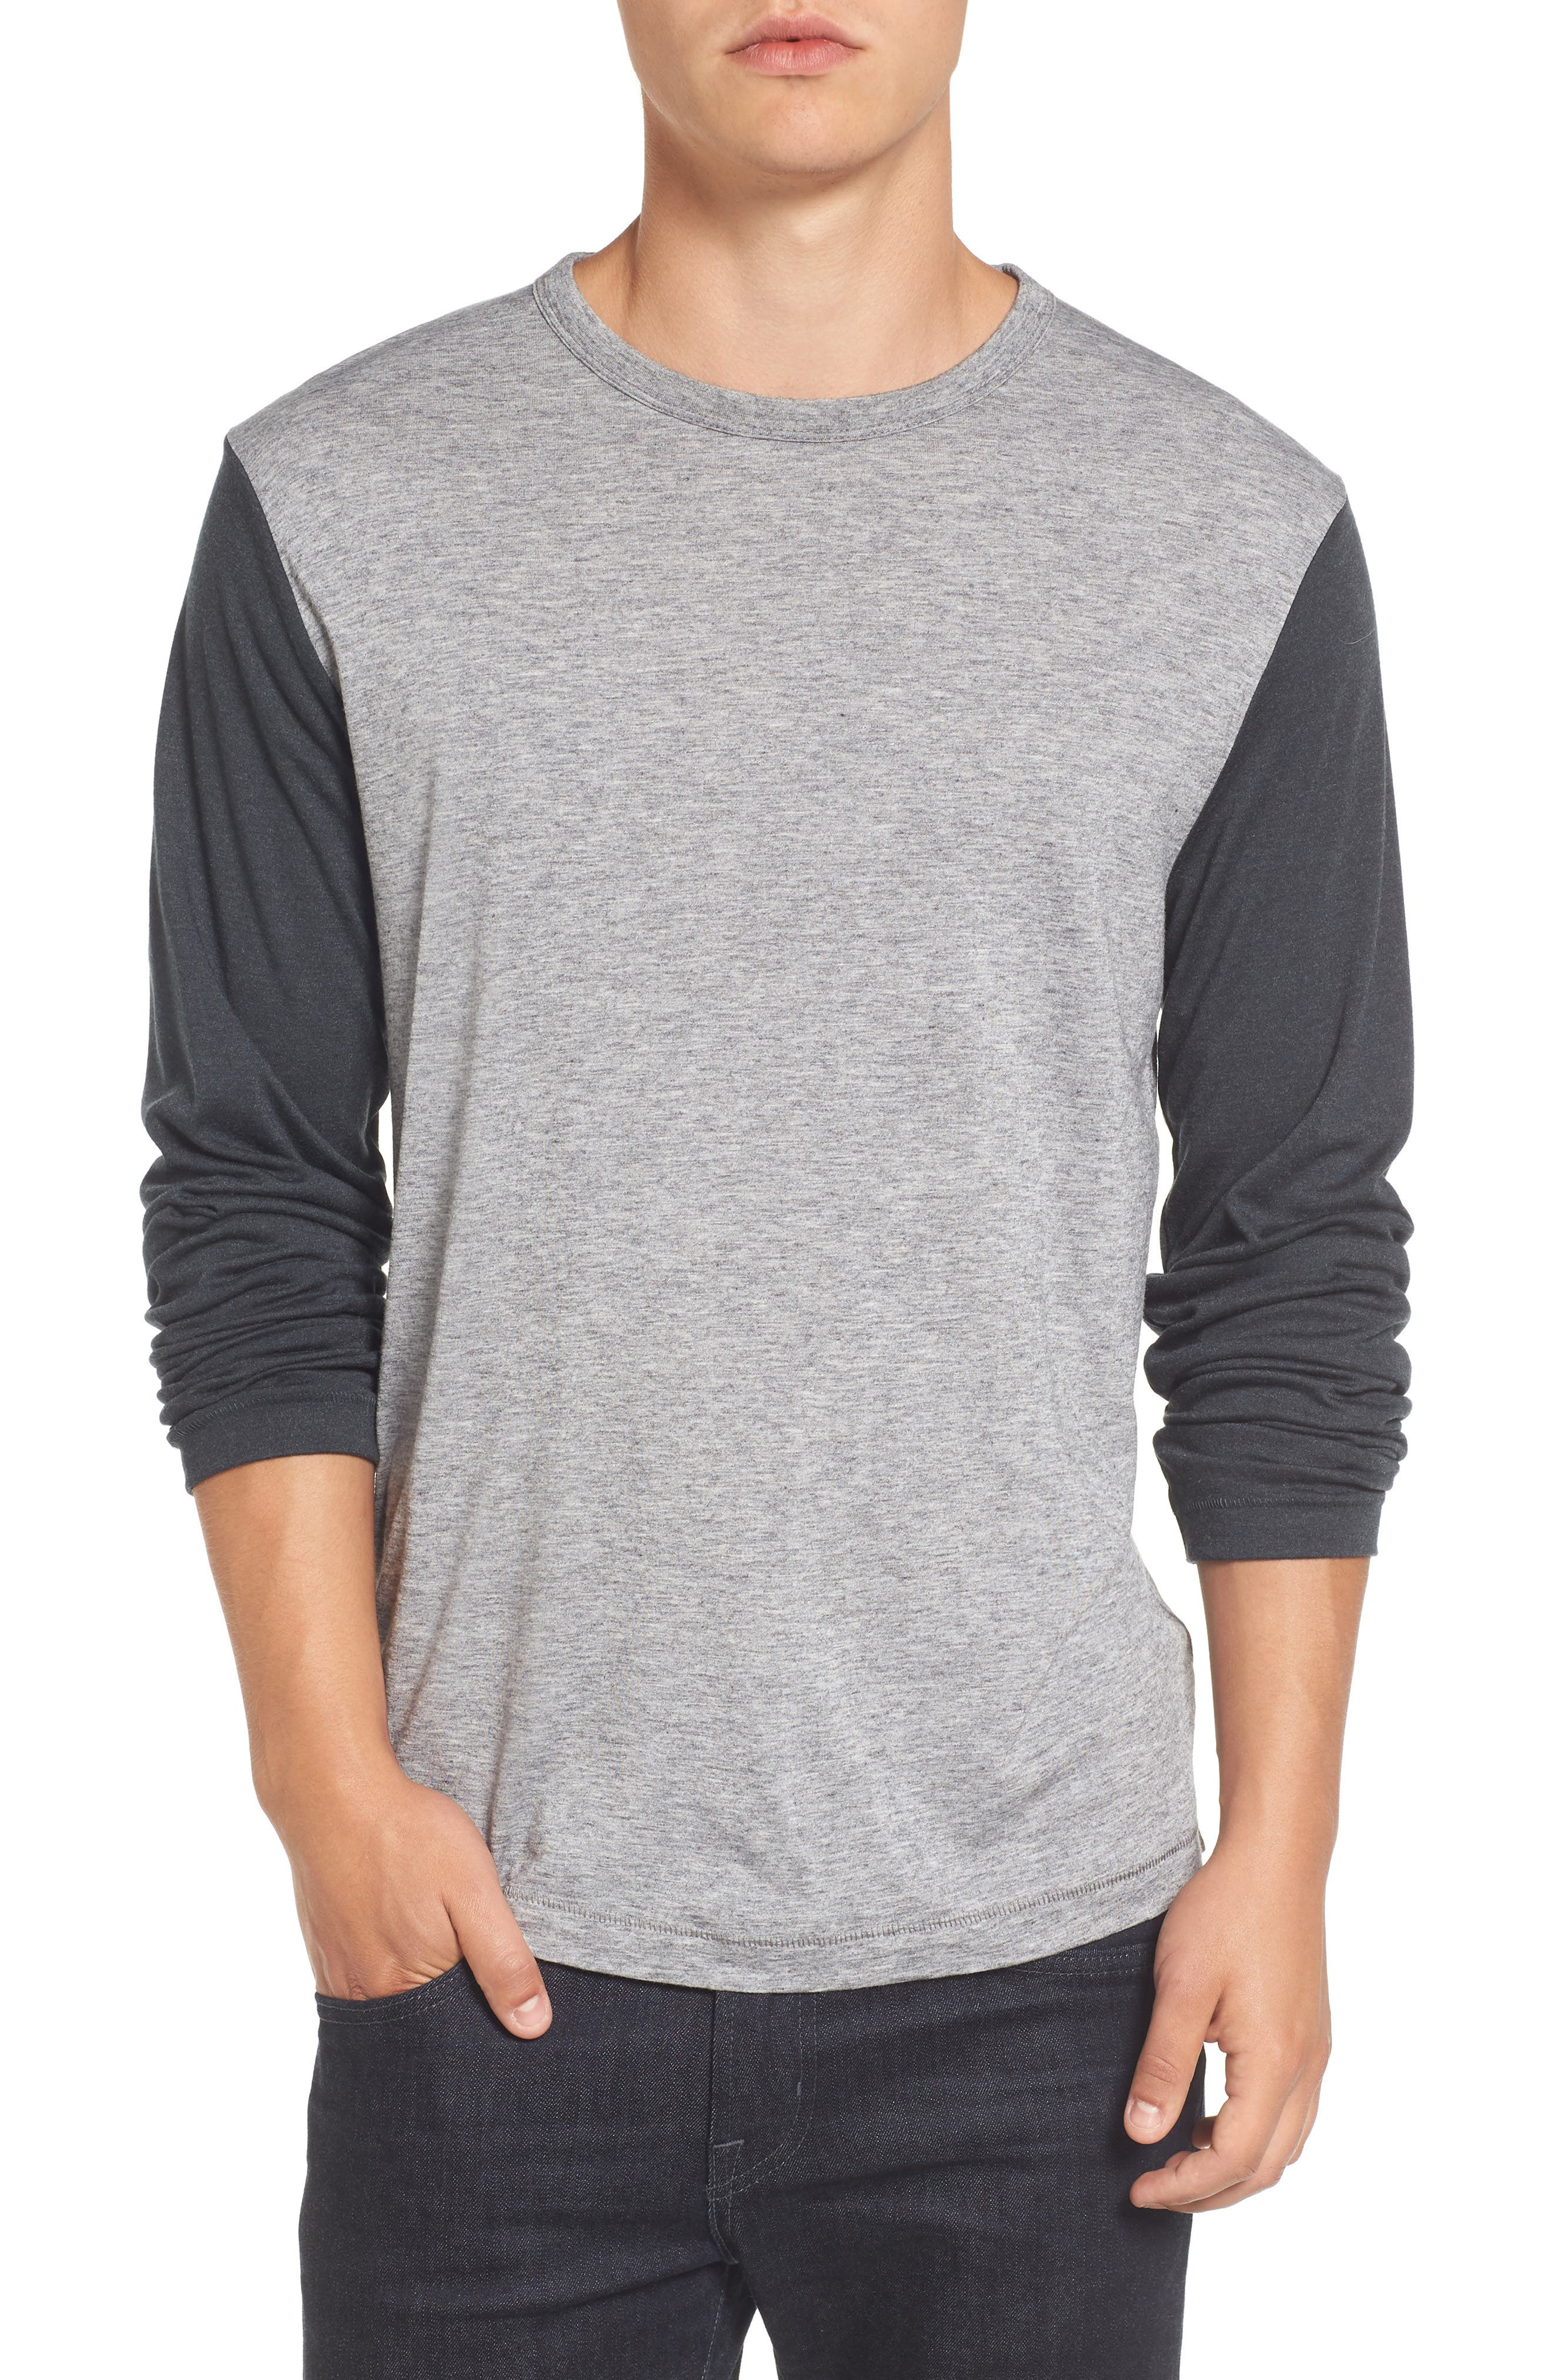 Alternate Image 1 Selected - French Connection Contrast Long Sleeve T-Shirt